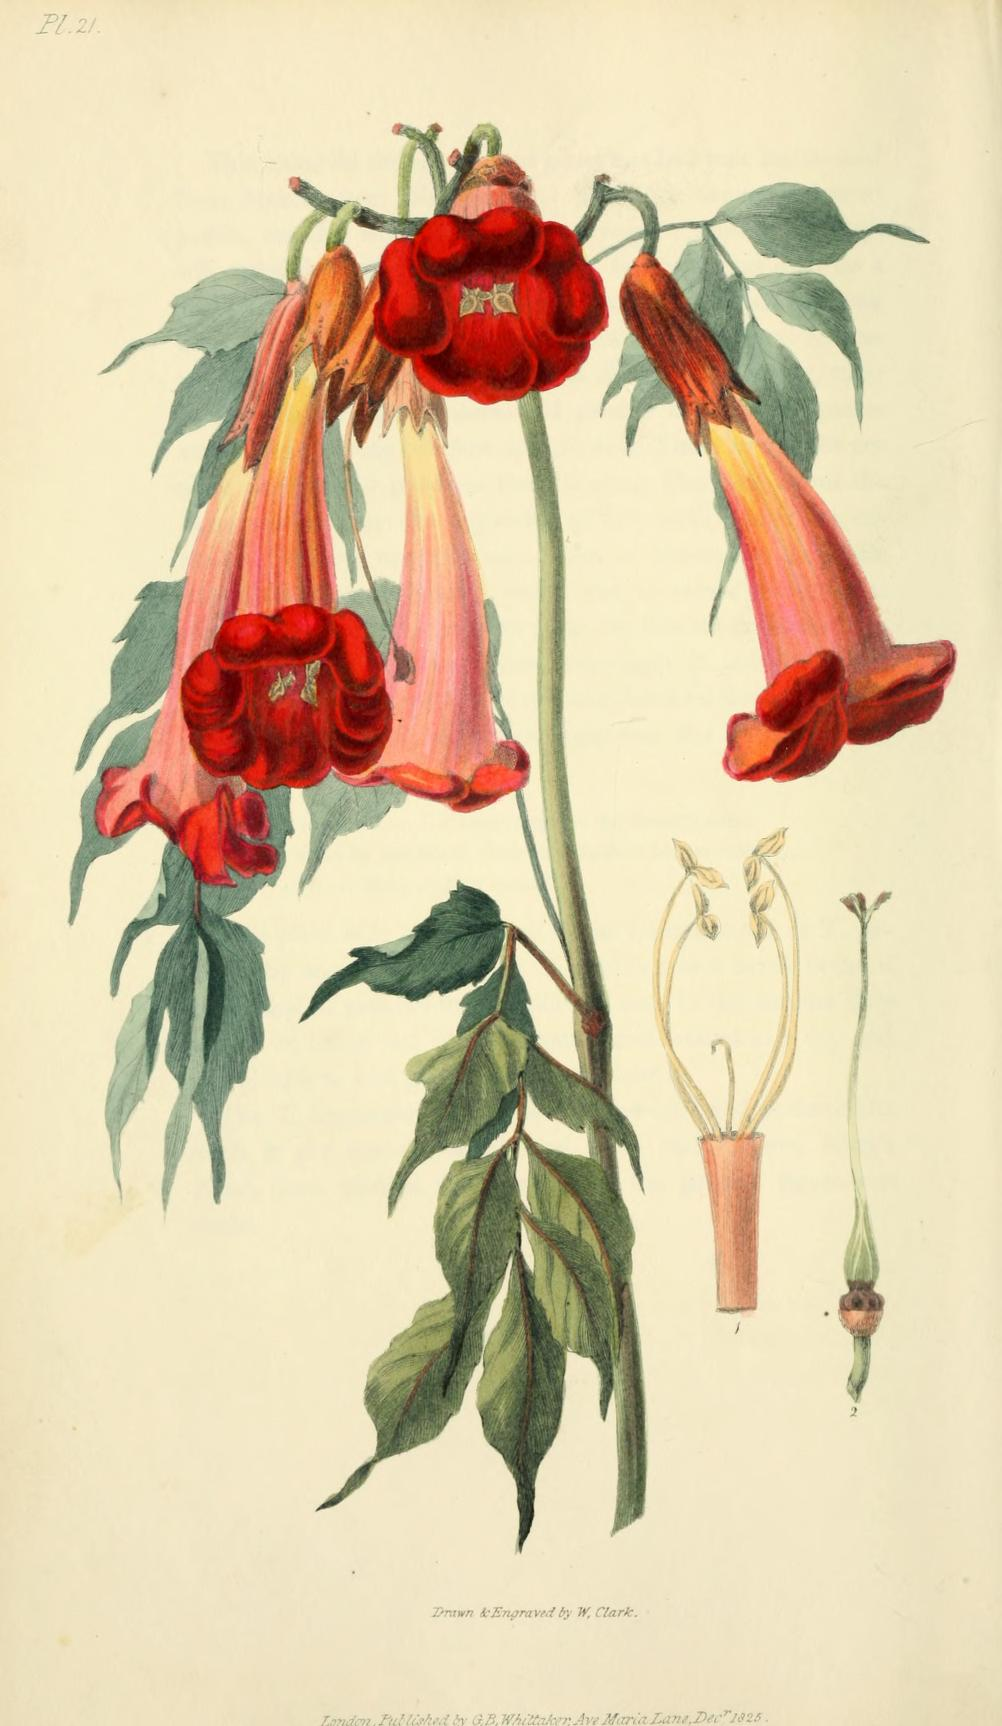 Ash leaved trumpet flower. Page 96.